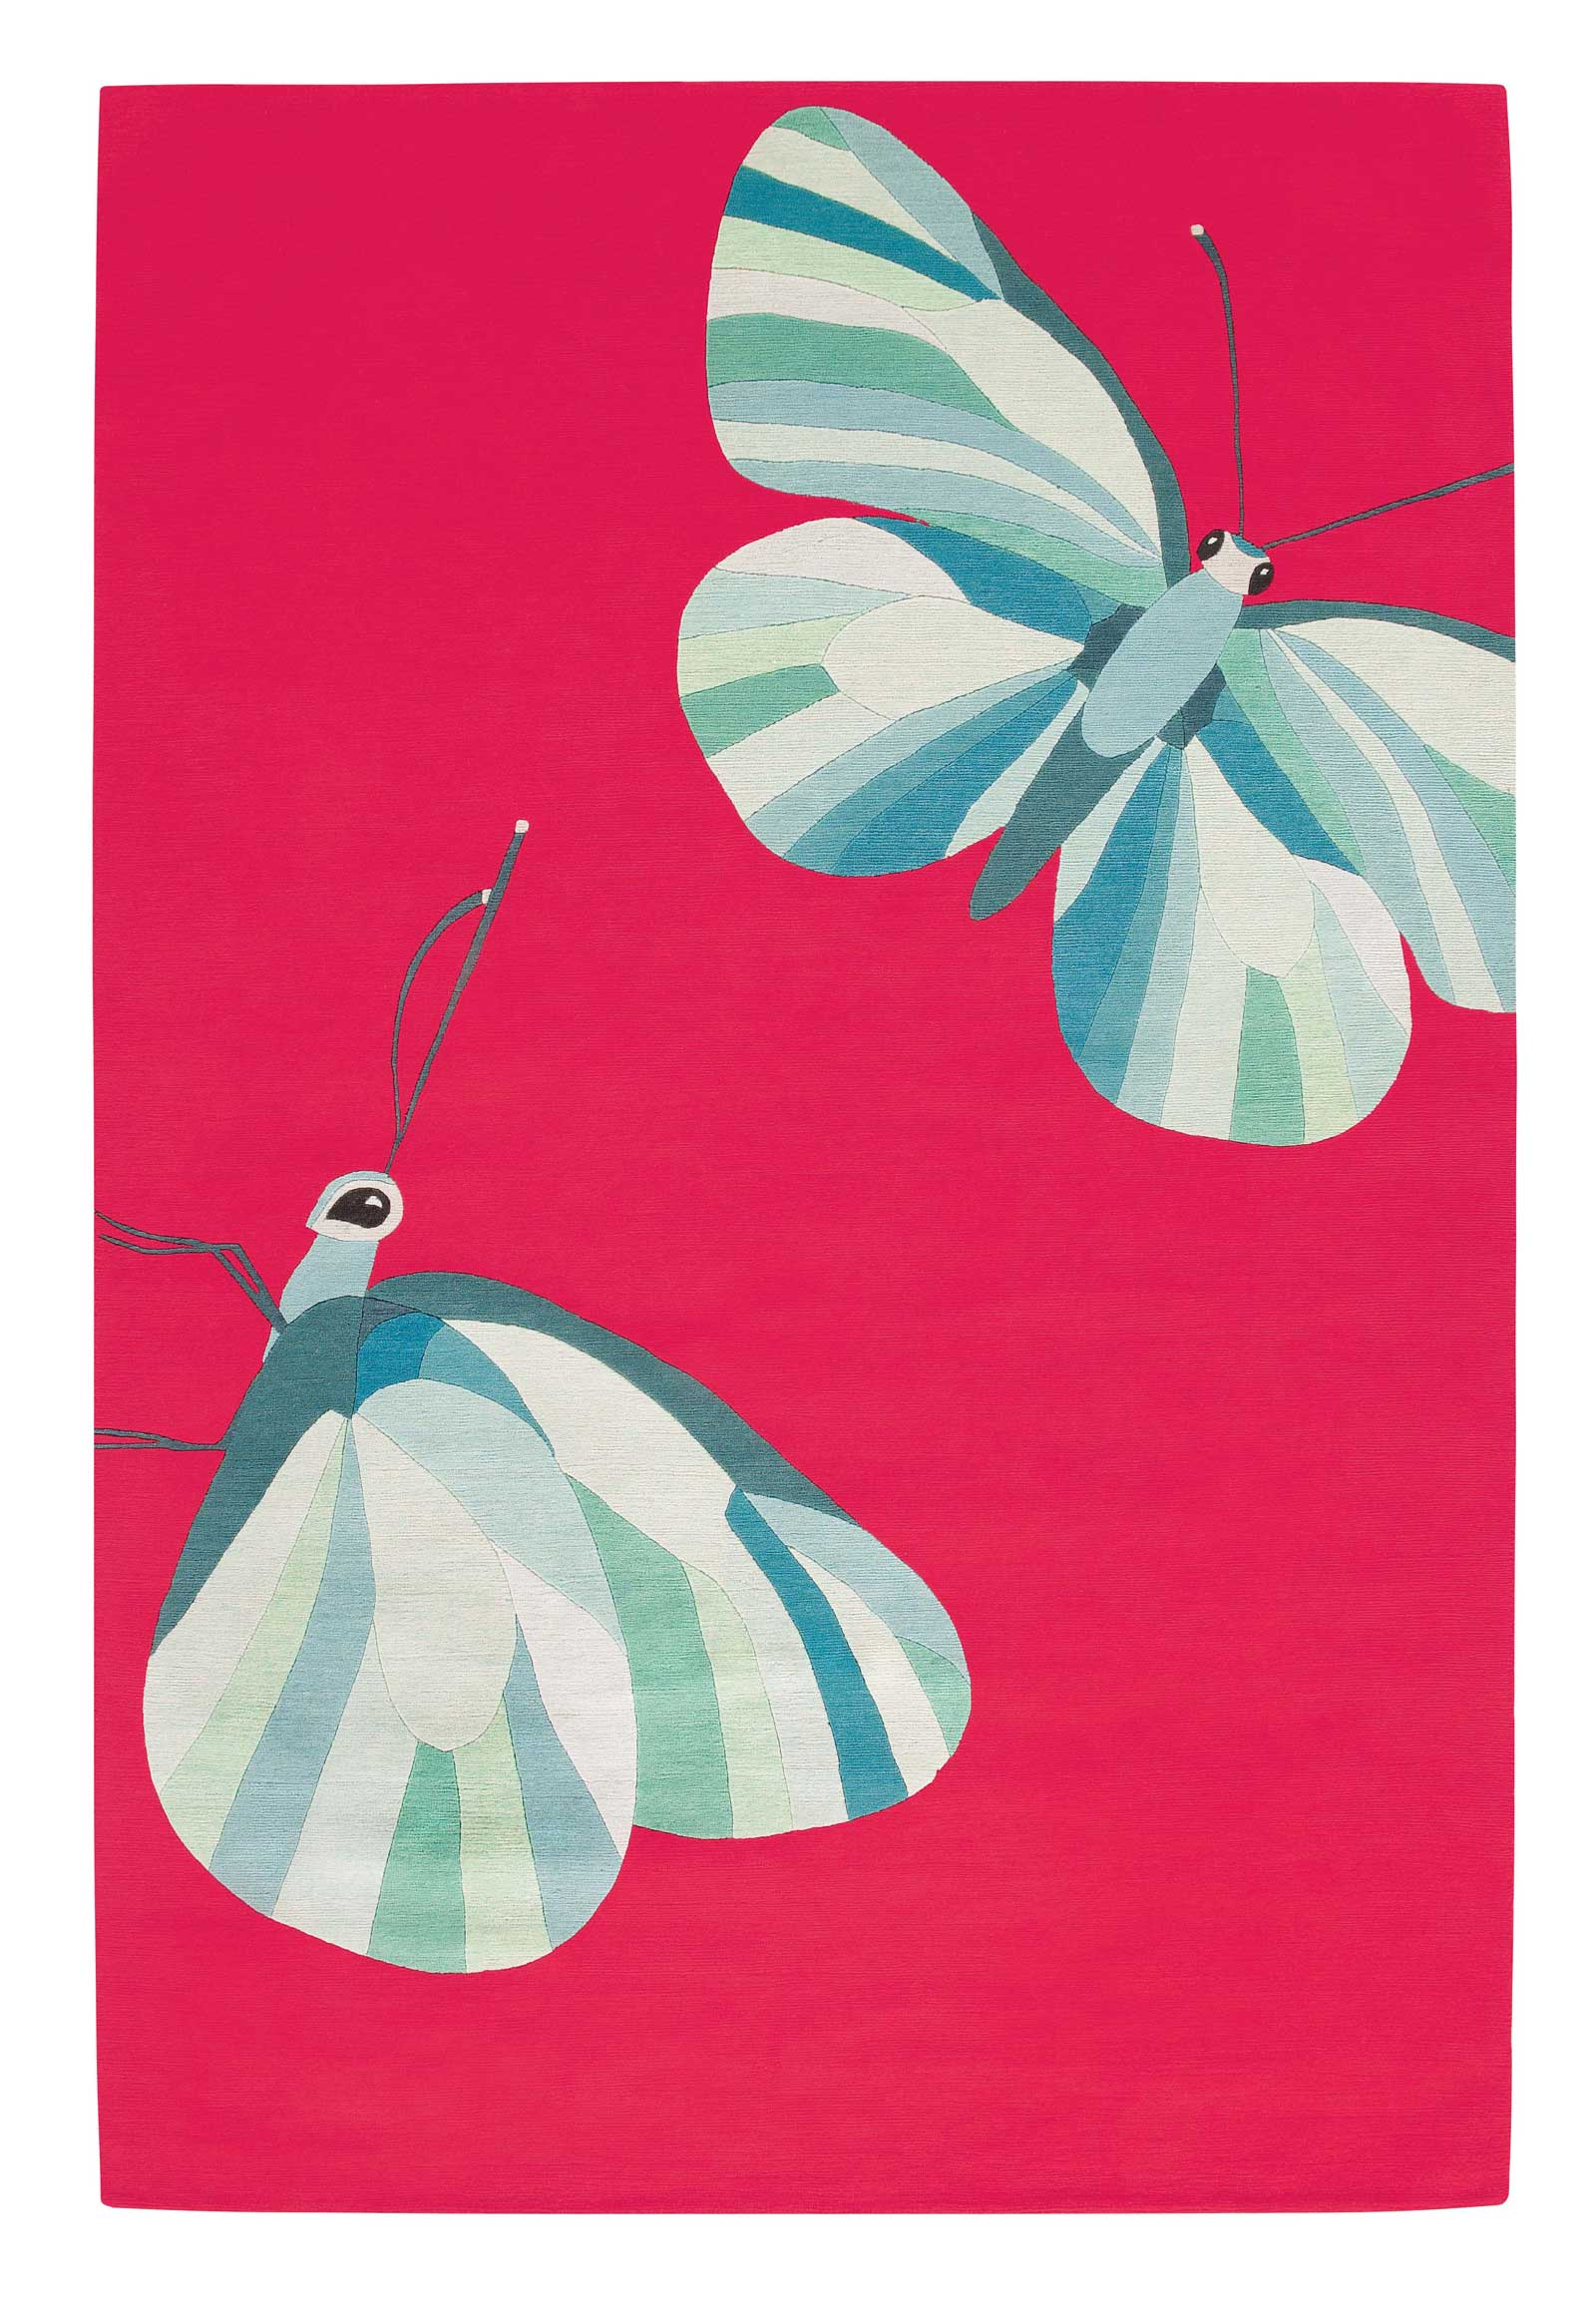 barber-osgerby-butterfly-pink-rug_1600